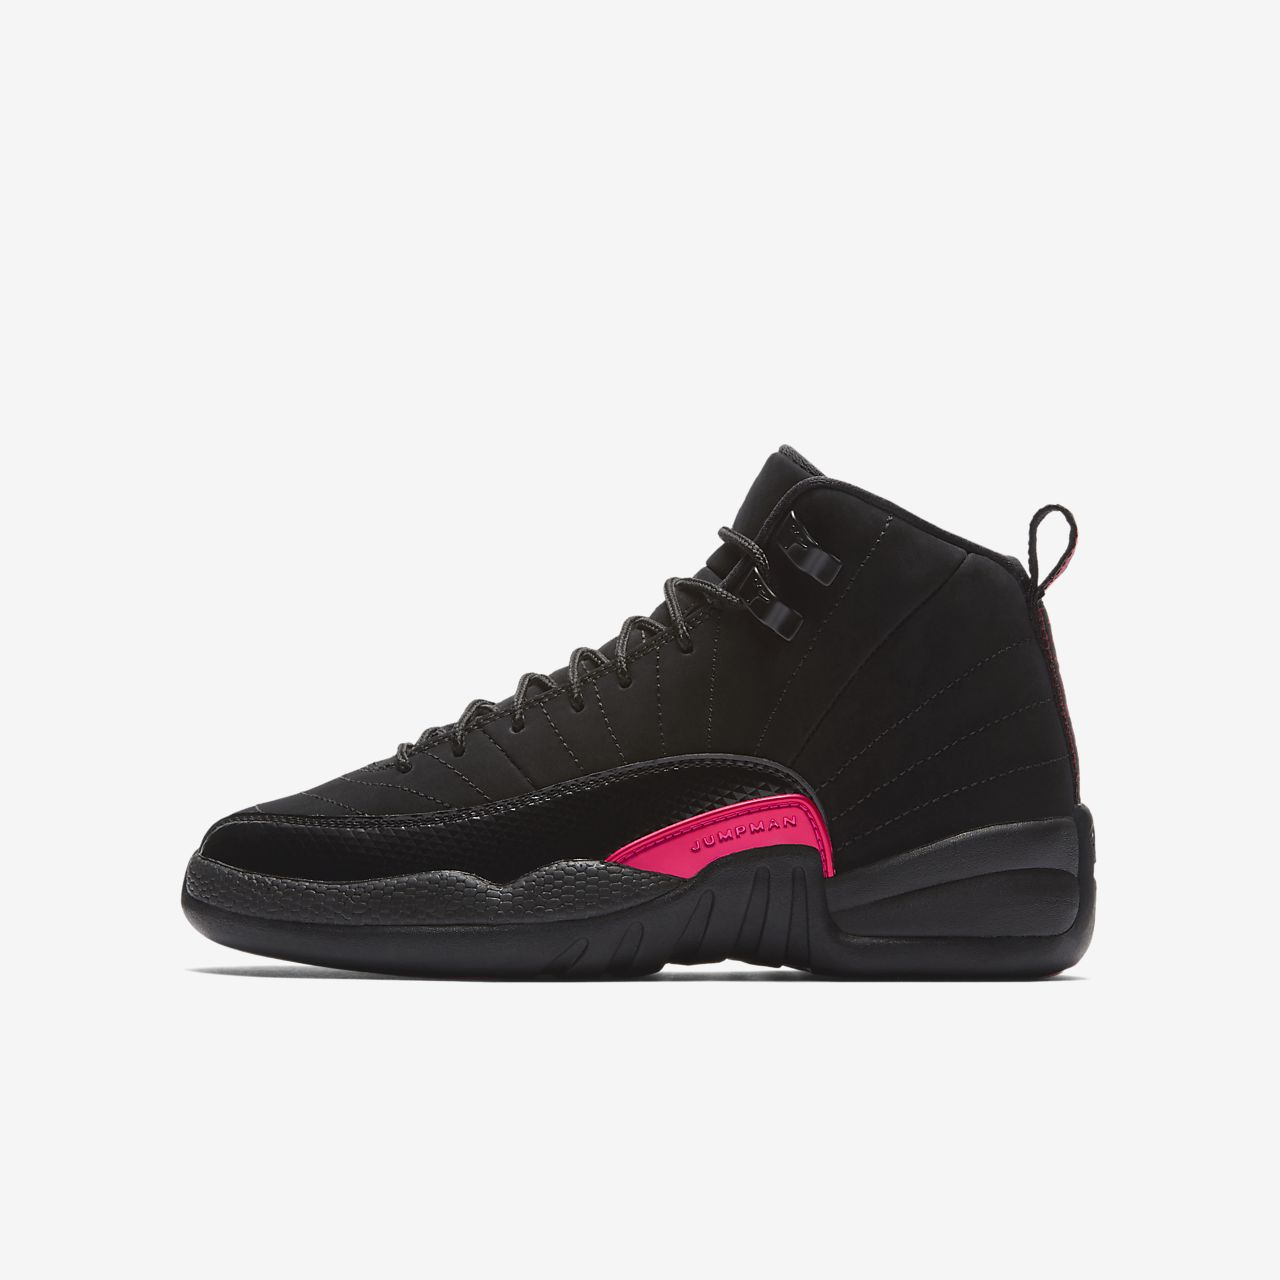 f51027edb1a3 ... greece air jordan 12 retro big kids shoe b6f02 d5de9